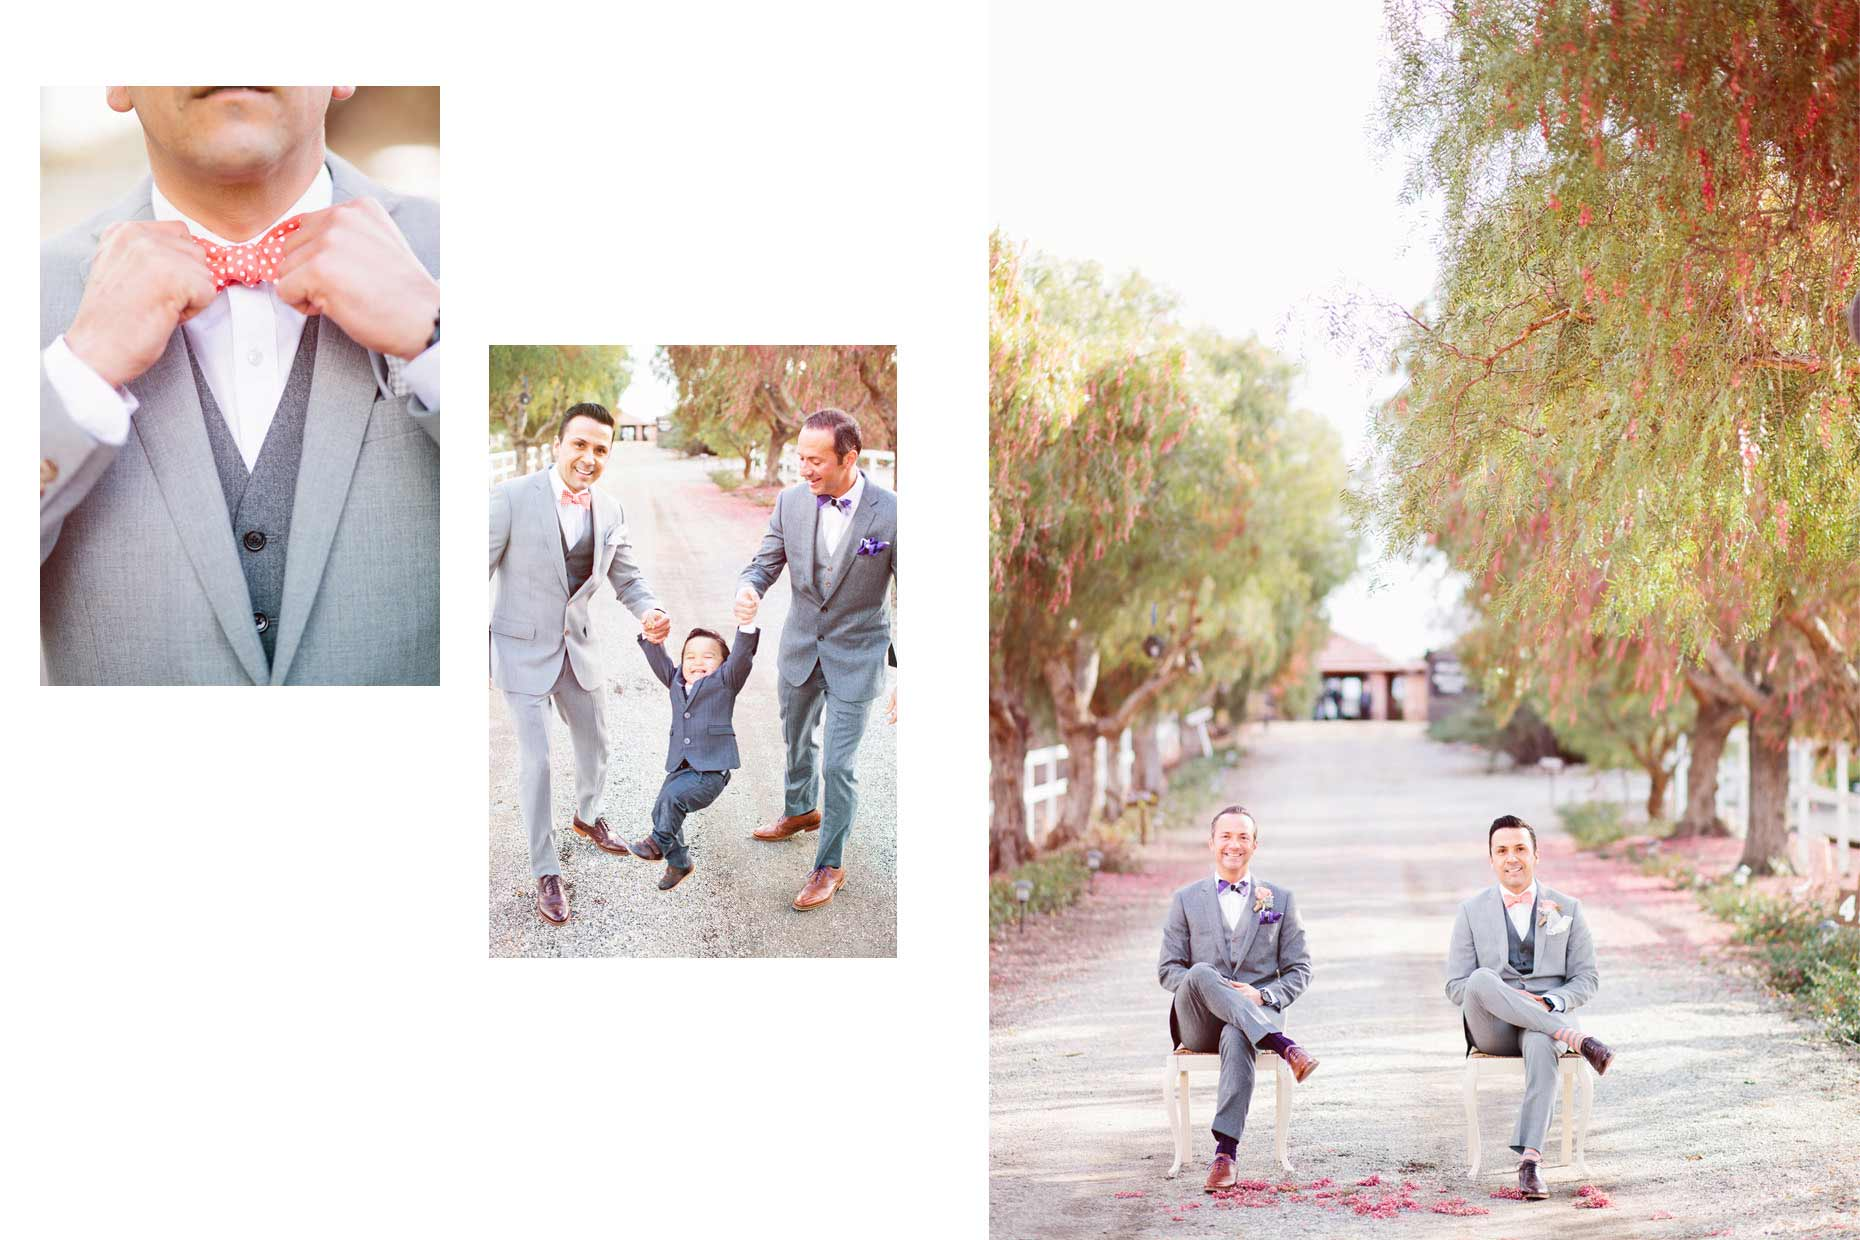 best creative wedding photographers in santa ynez santa barbara-Apple-Creek-Ranch-Wedding-by-Pierre-olivier-Photography-7